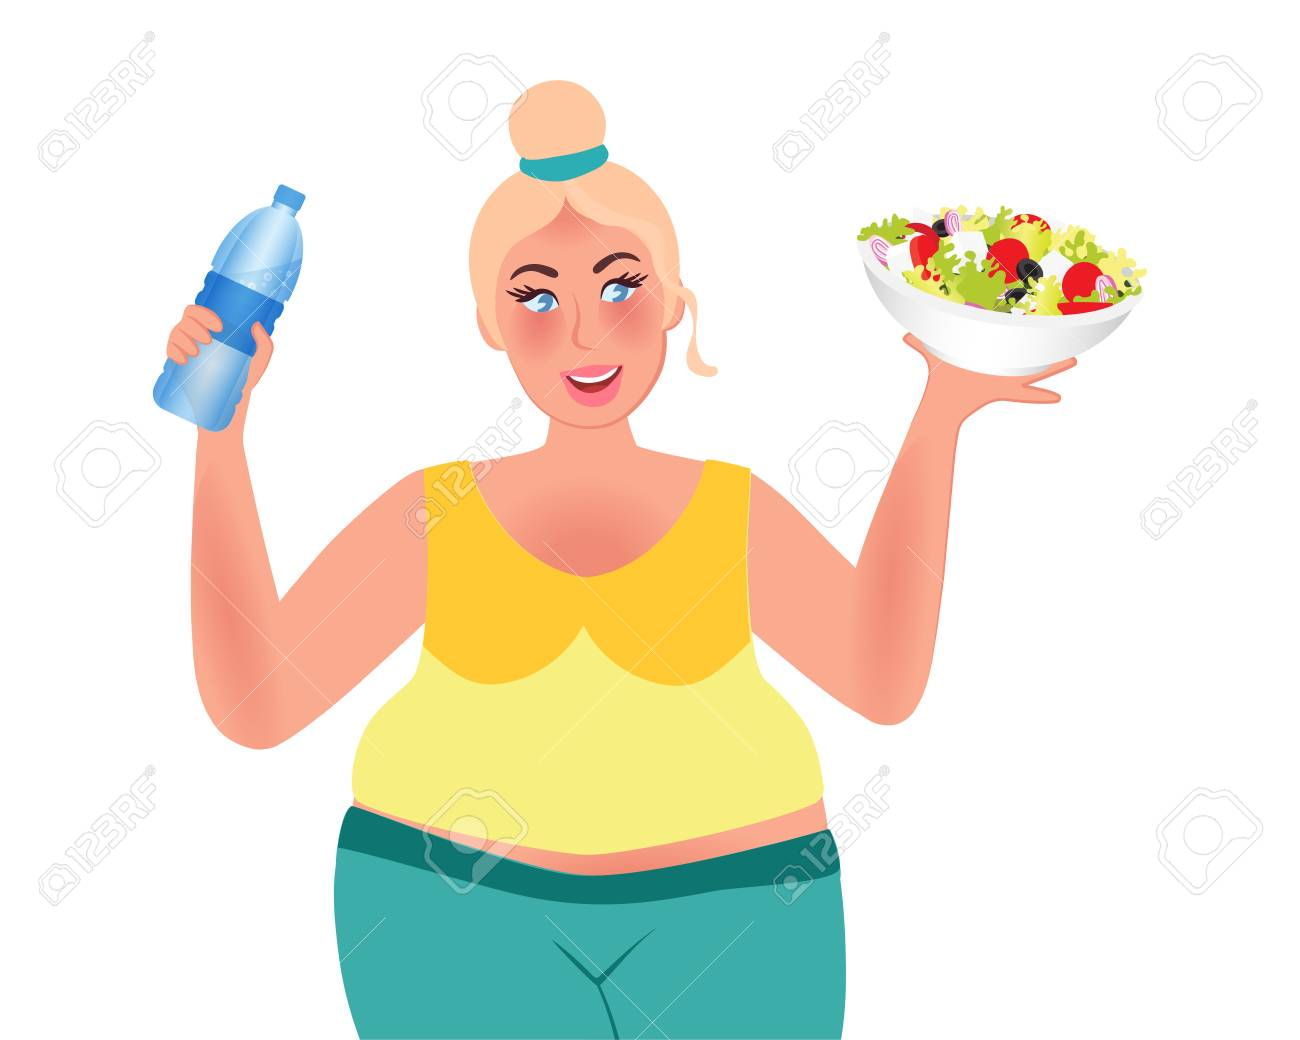 Losing weight. Full girl holds salad and water. Healthy lifestyle. Proper diet. Vector illustration - 123019681